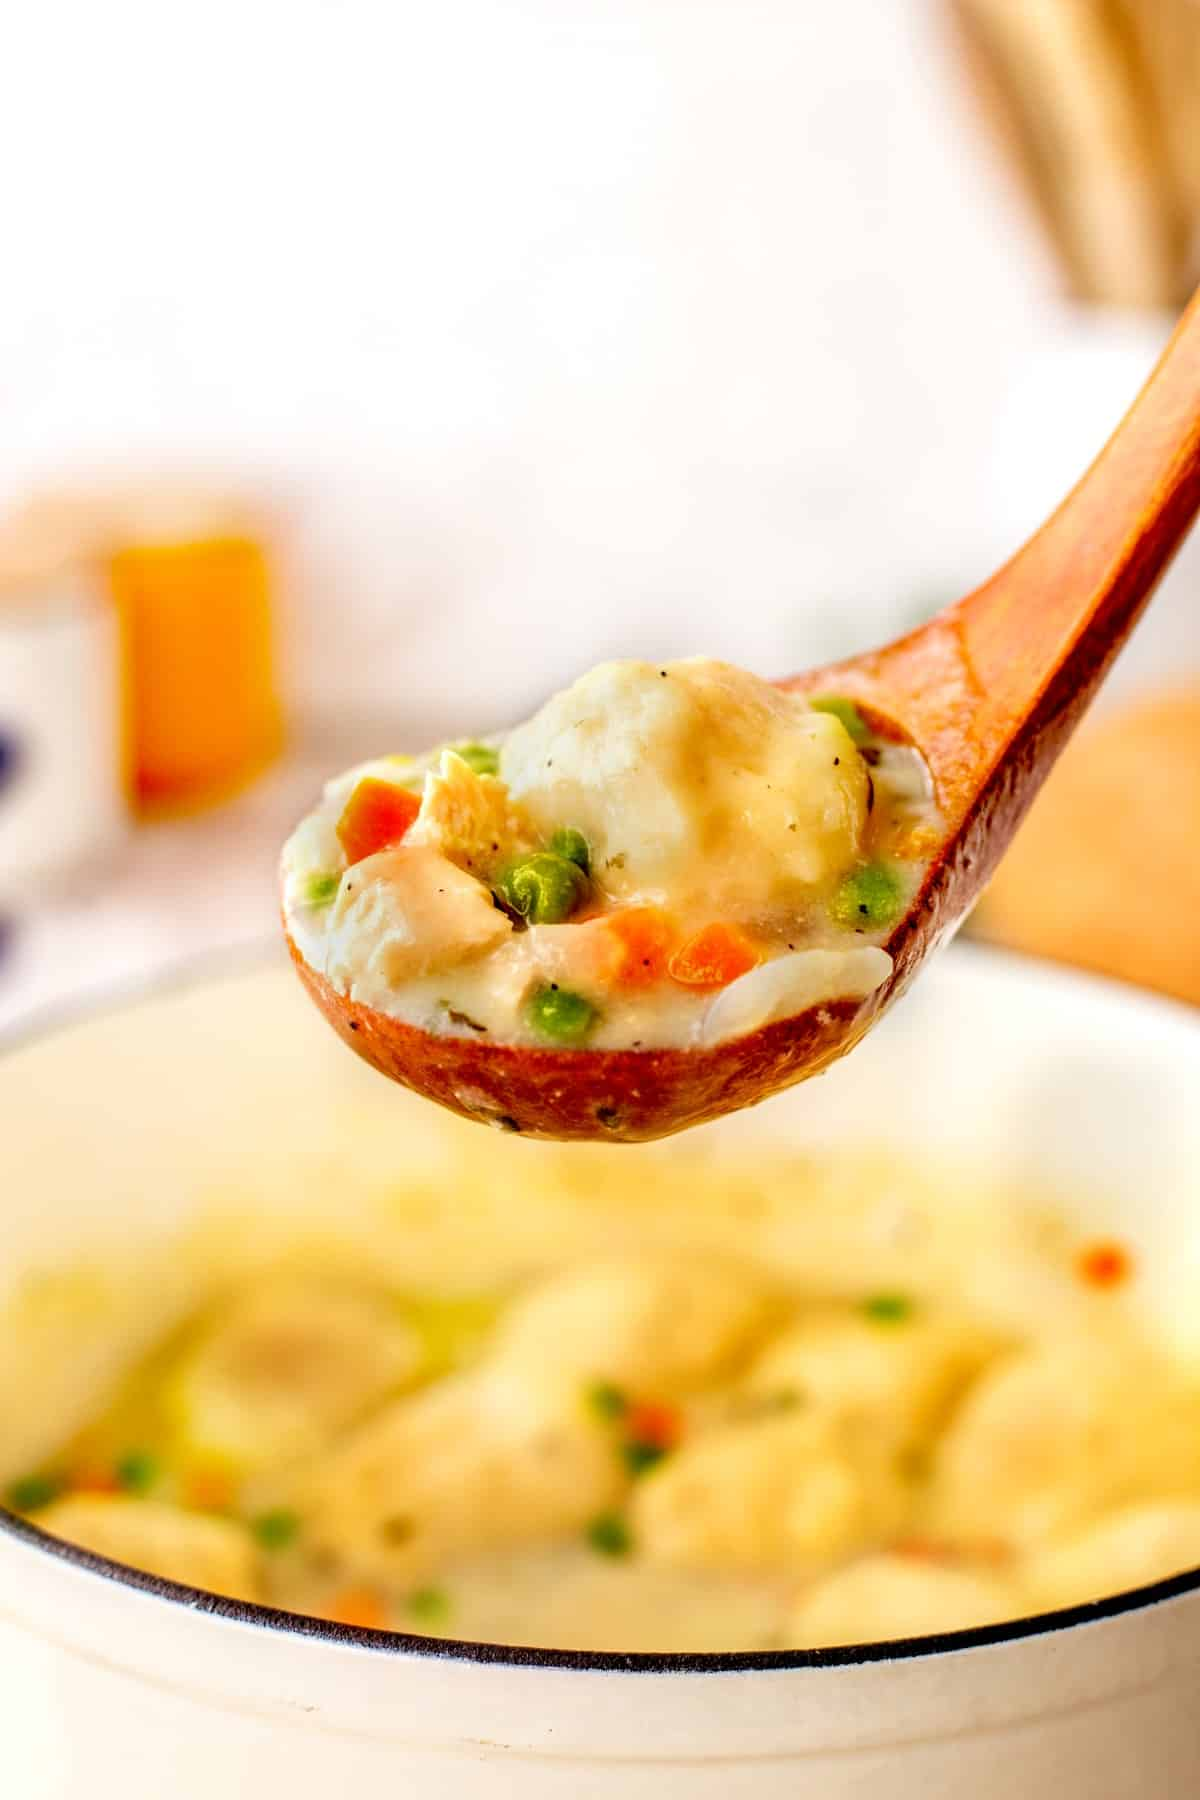 Chicken and dumplings on a spoon